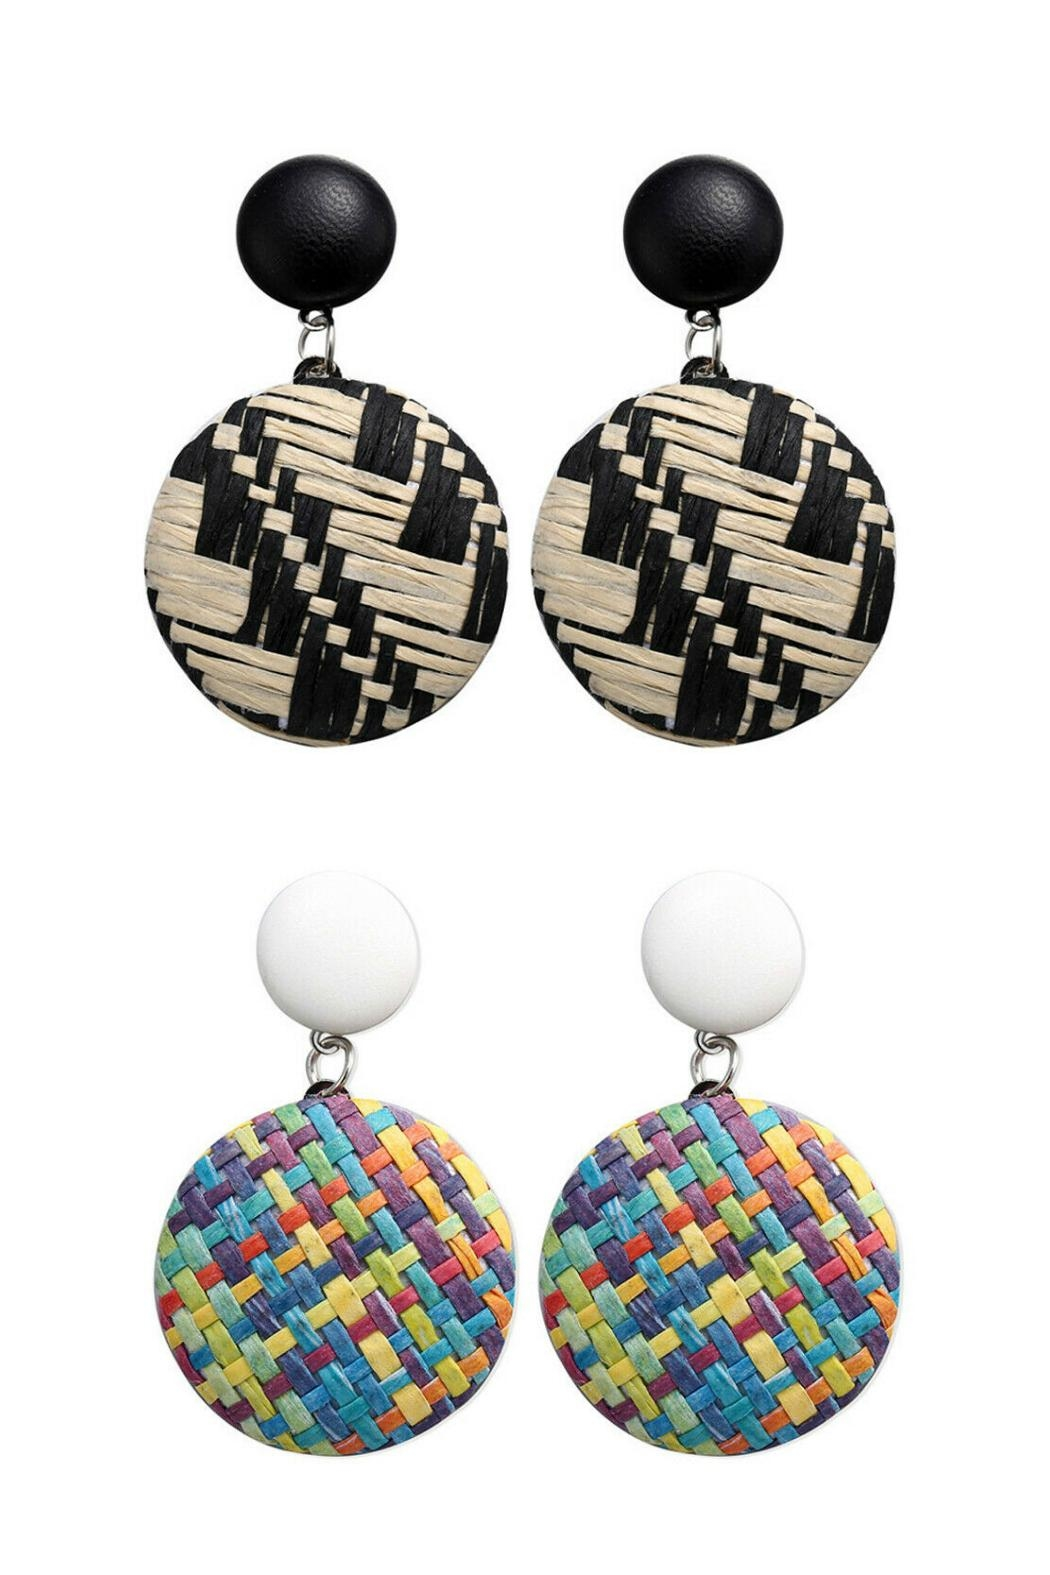 Mimi's Gift Gallery Rattan Multicolor Earrings - Main Image